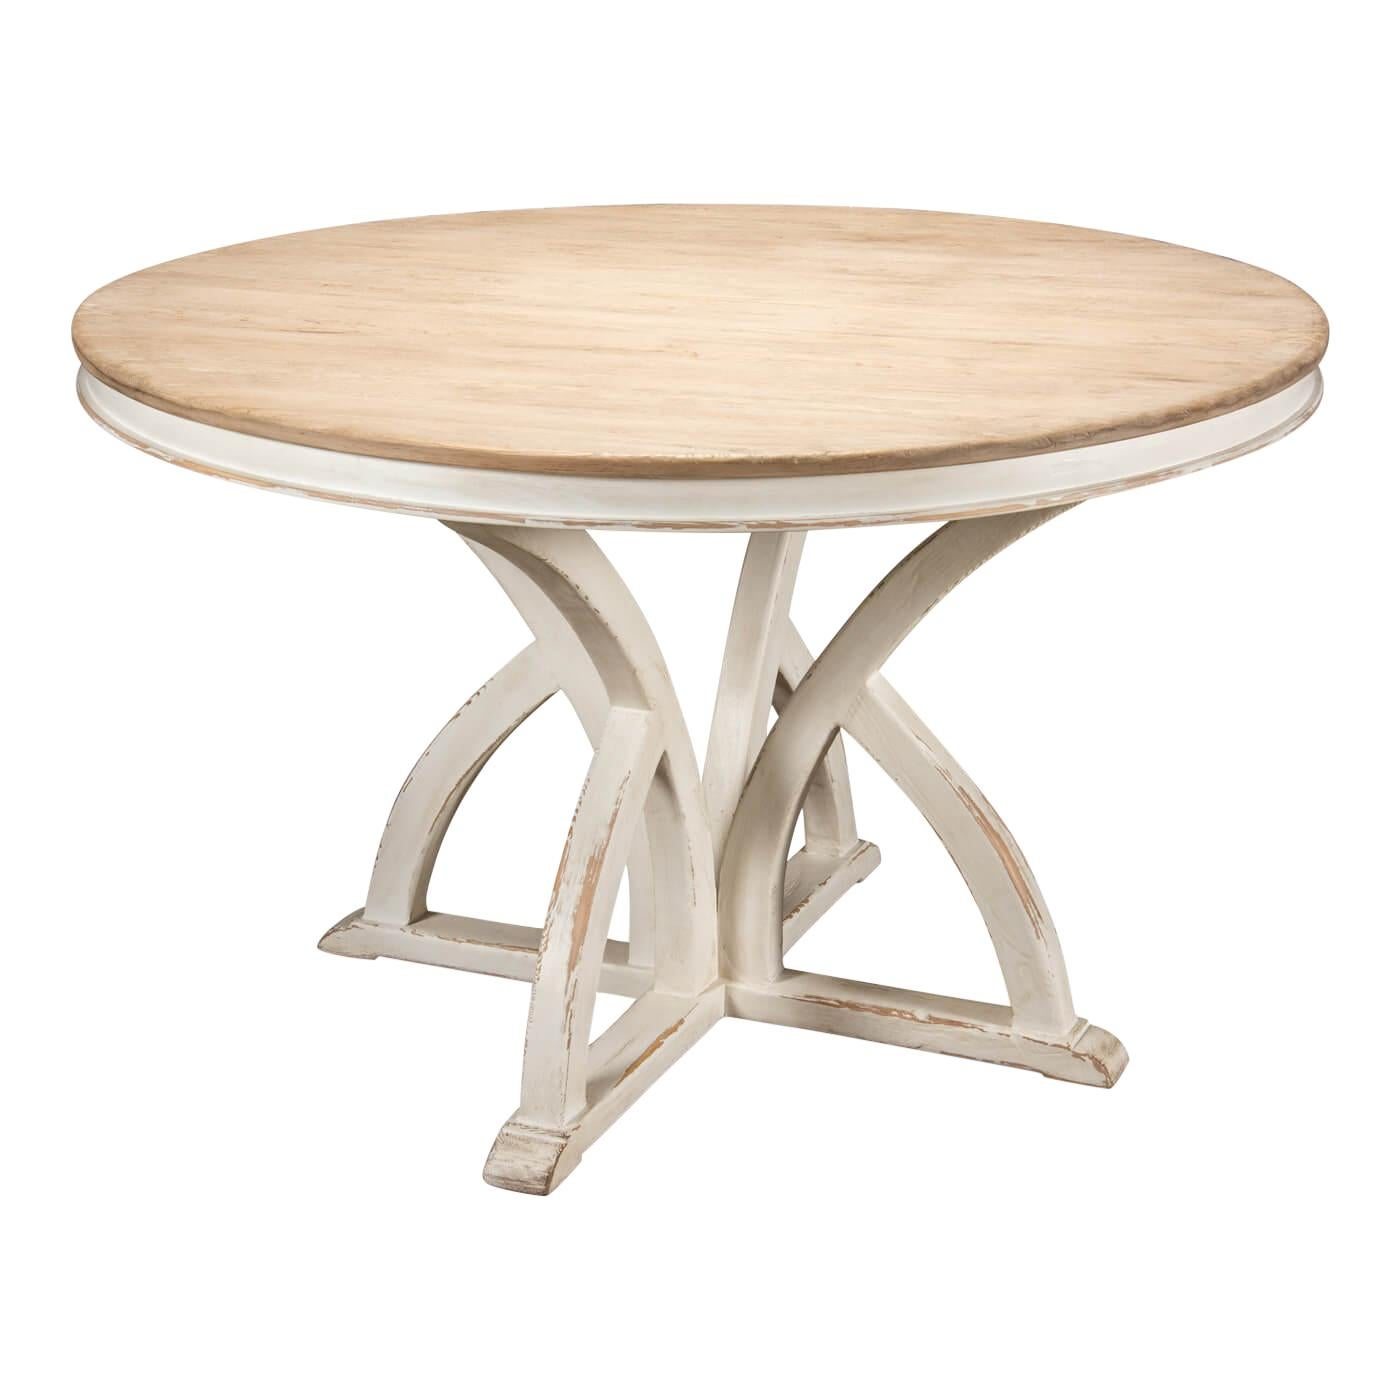 Rustic Round Pine Top Dining Table